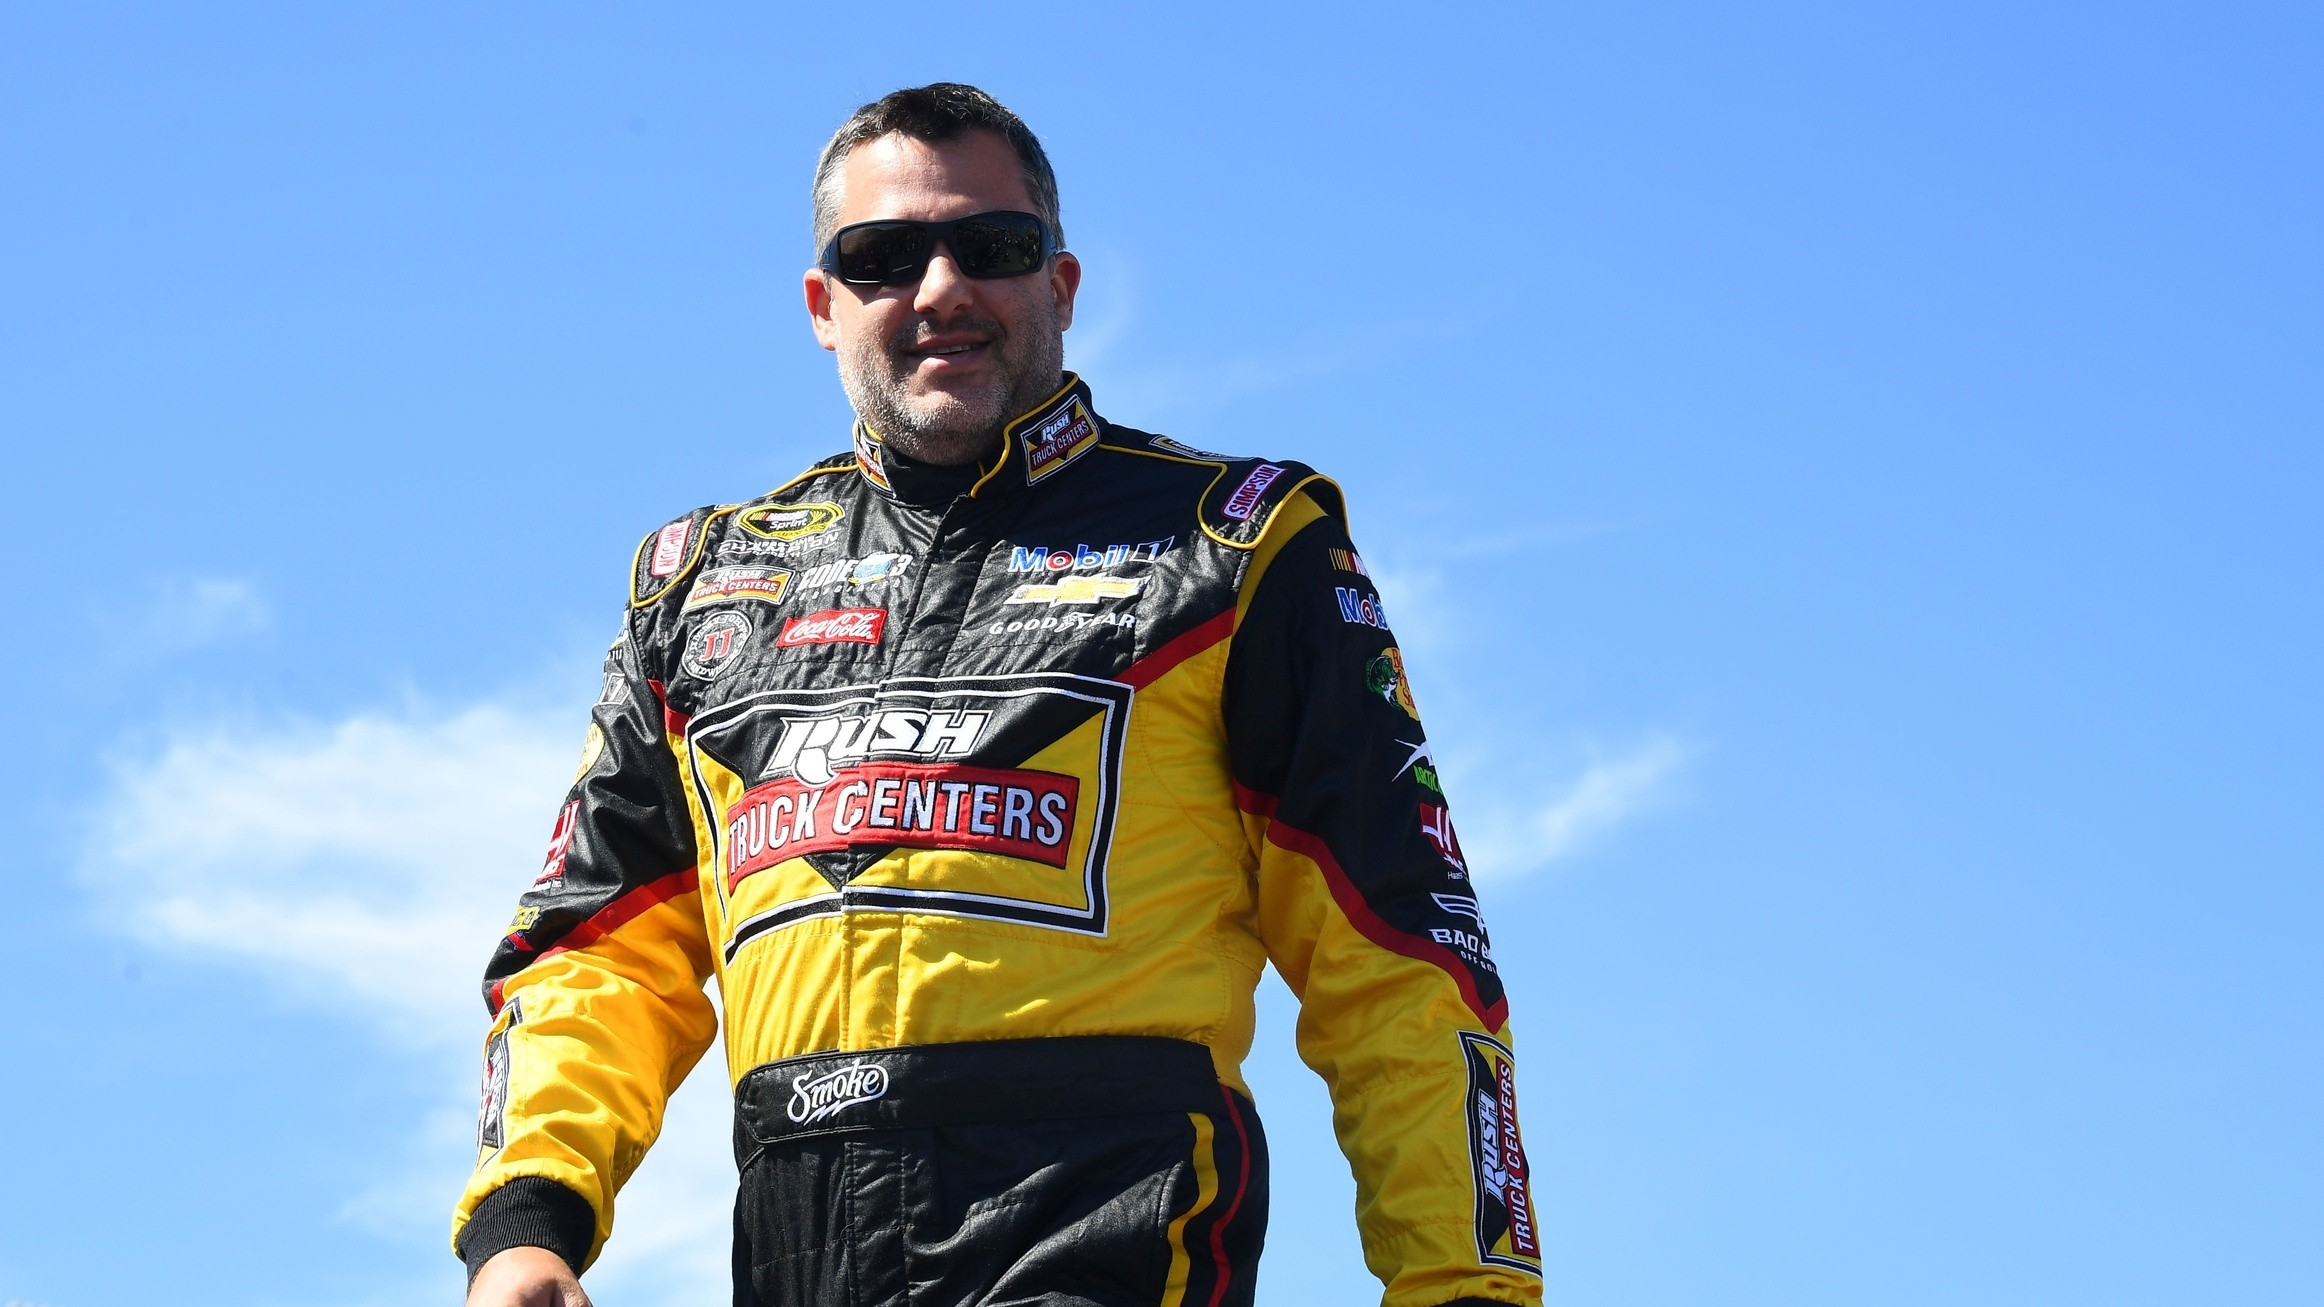 Tony Stewart Isn't Going to Stop Racing Anytime Soon